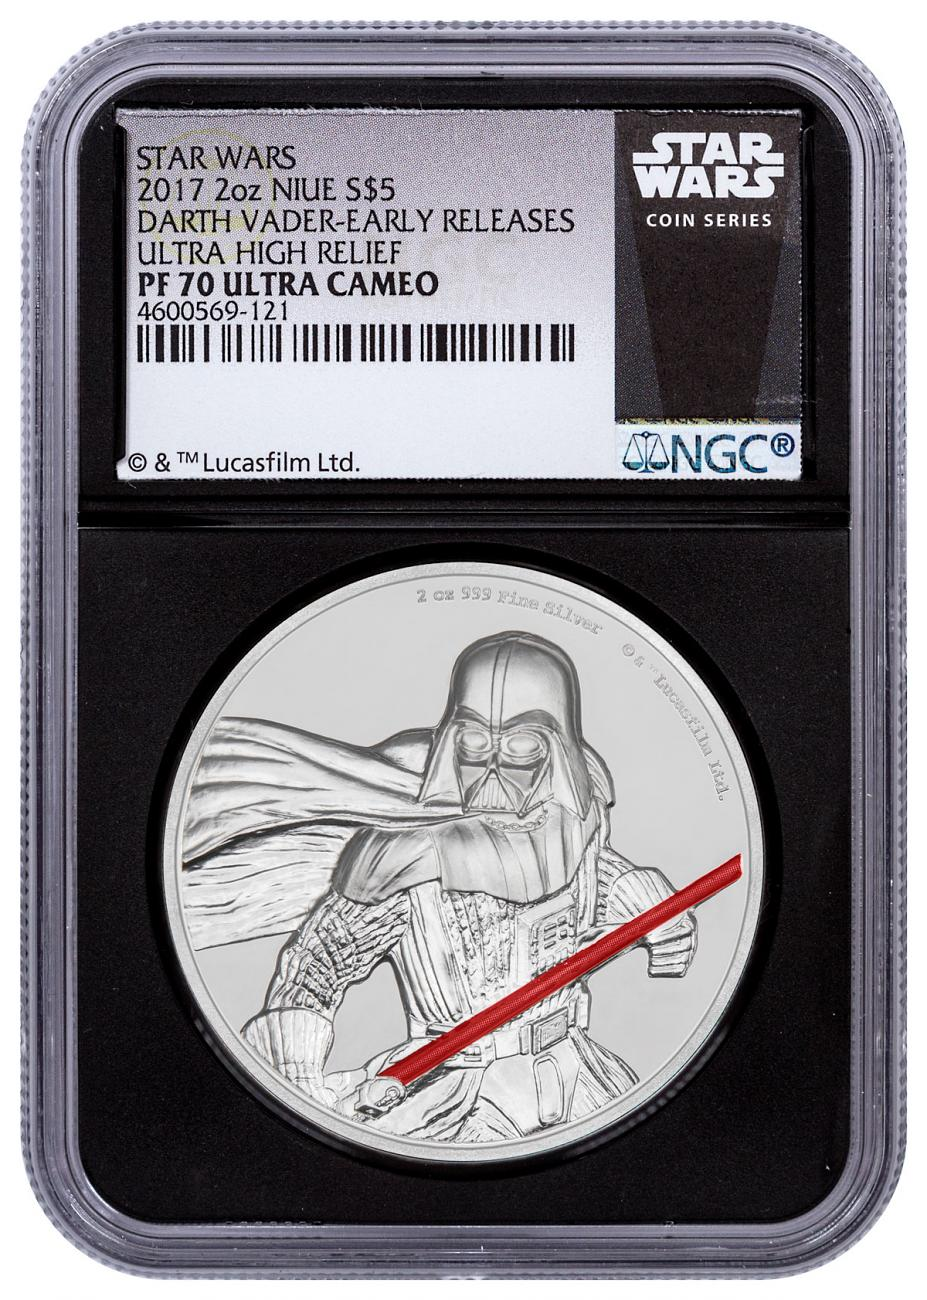 2017 Niue Star Wars - Darth Vader Ultra High Relief 2 oz Silver Colorized Proof $5 Coin NGC PF70 UC ER Black Core Holder Exclusive Star Wars Label